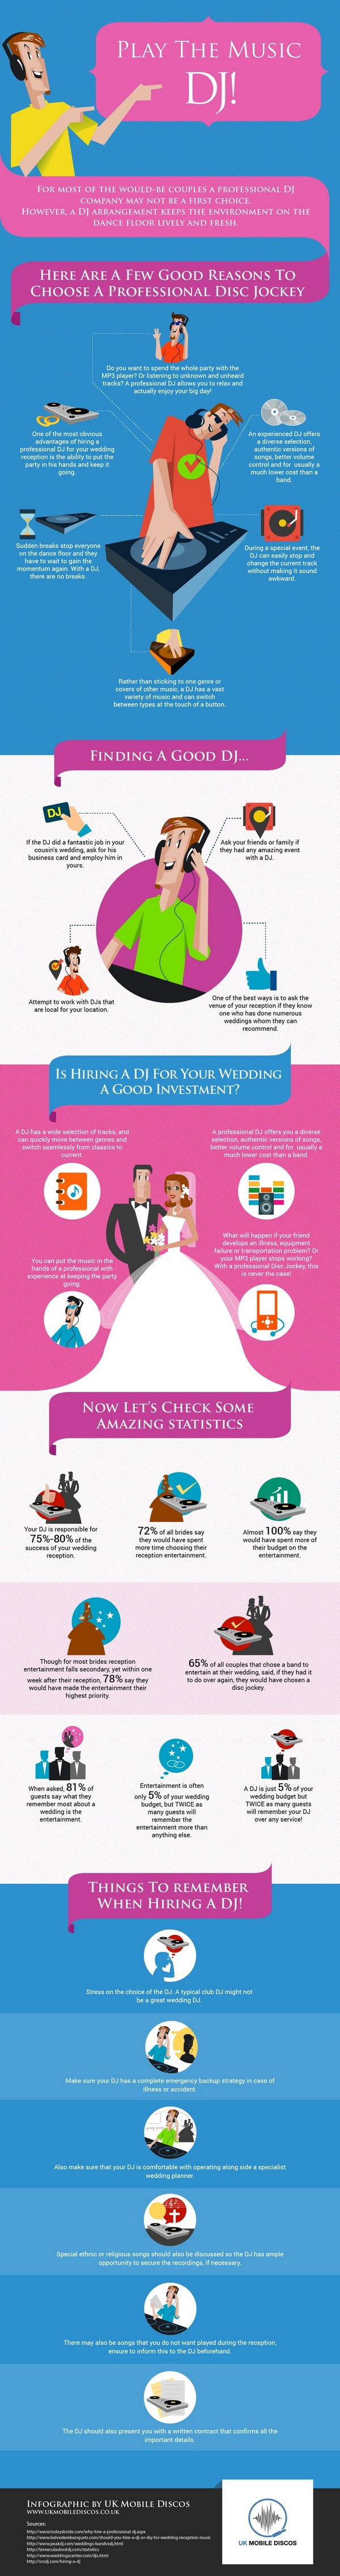 Reasons to Choose a Professional Wedding DJ Infographic